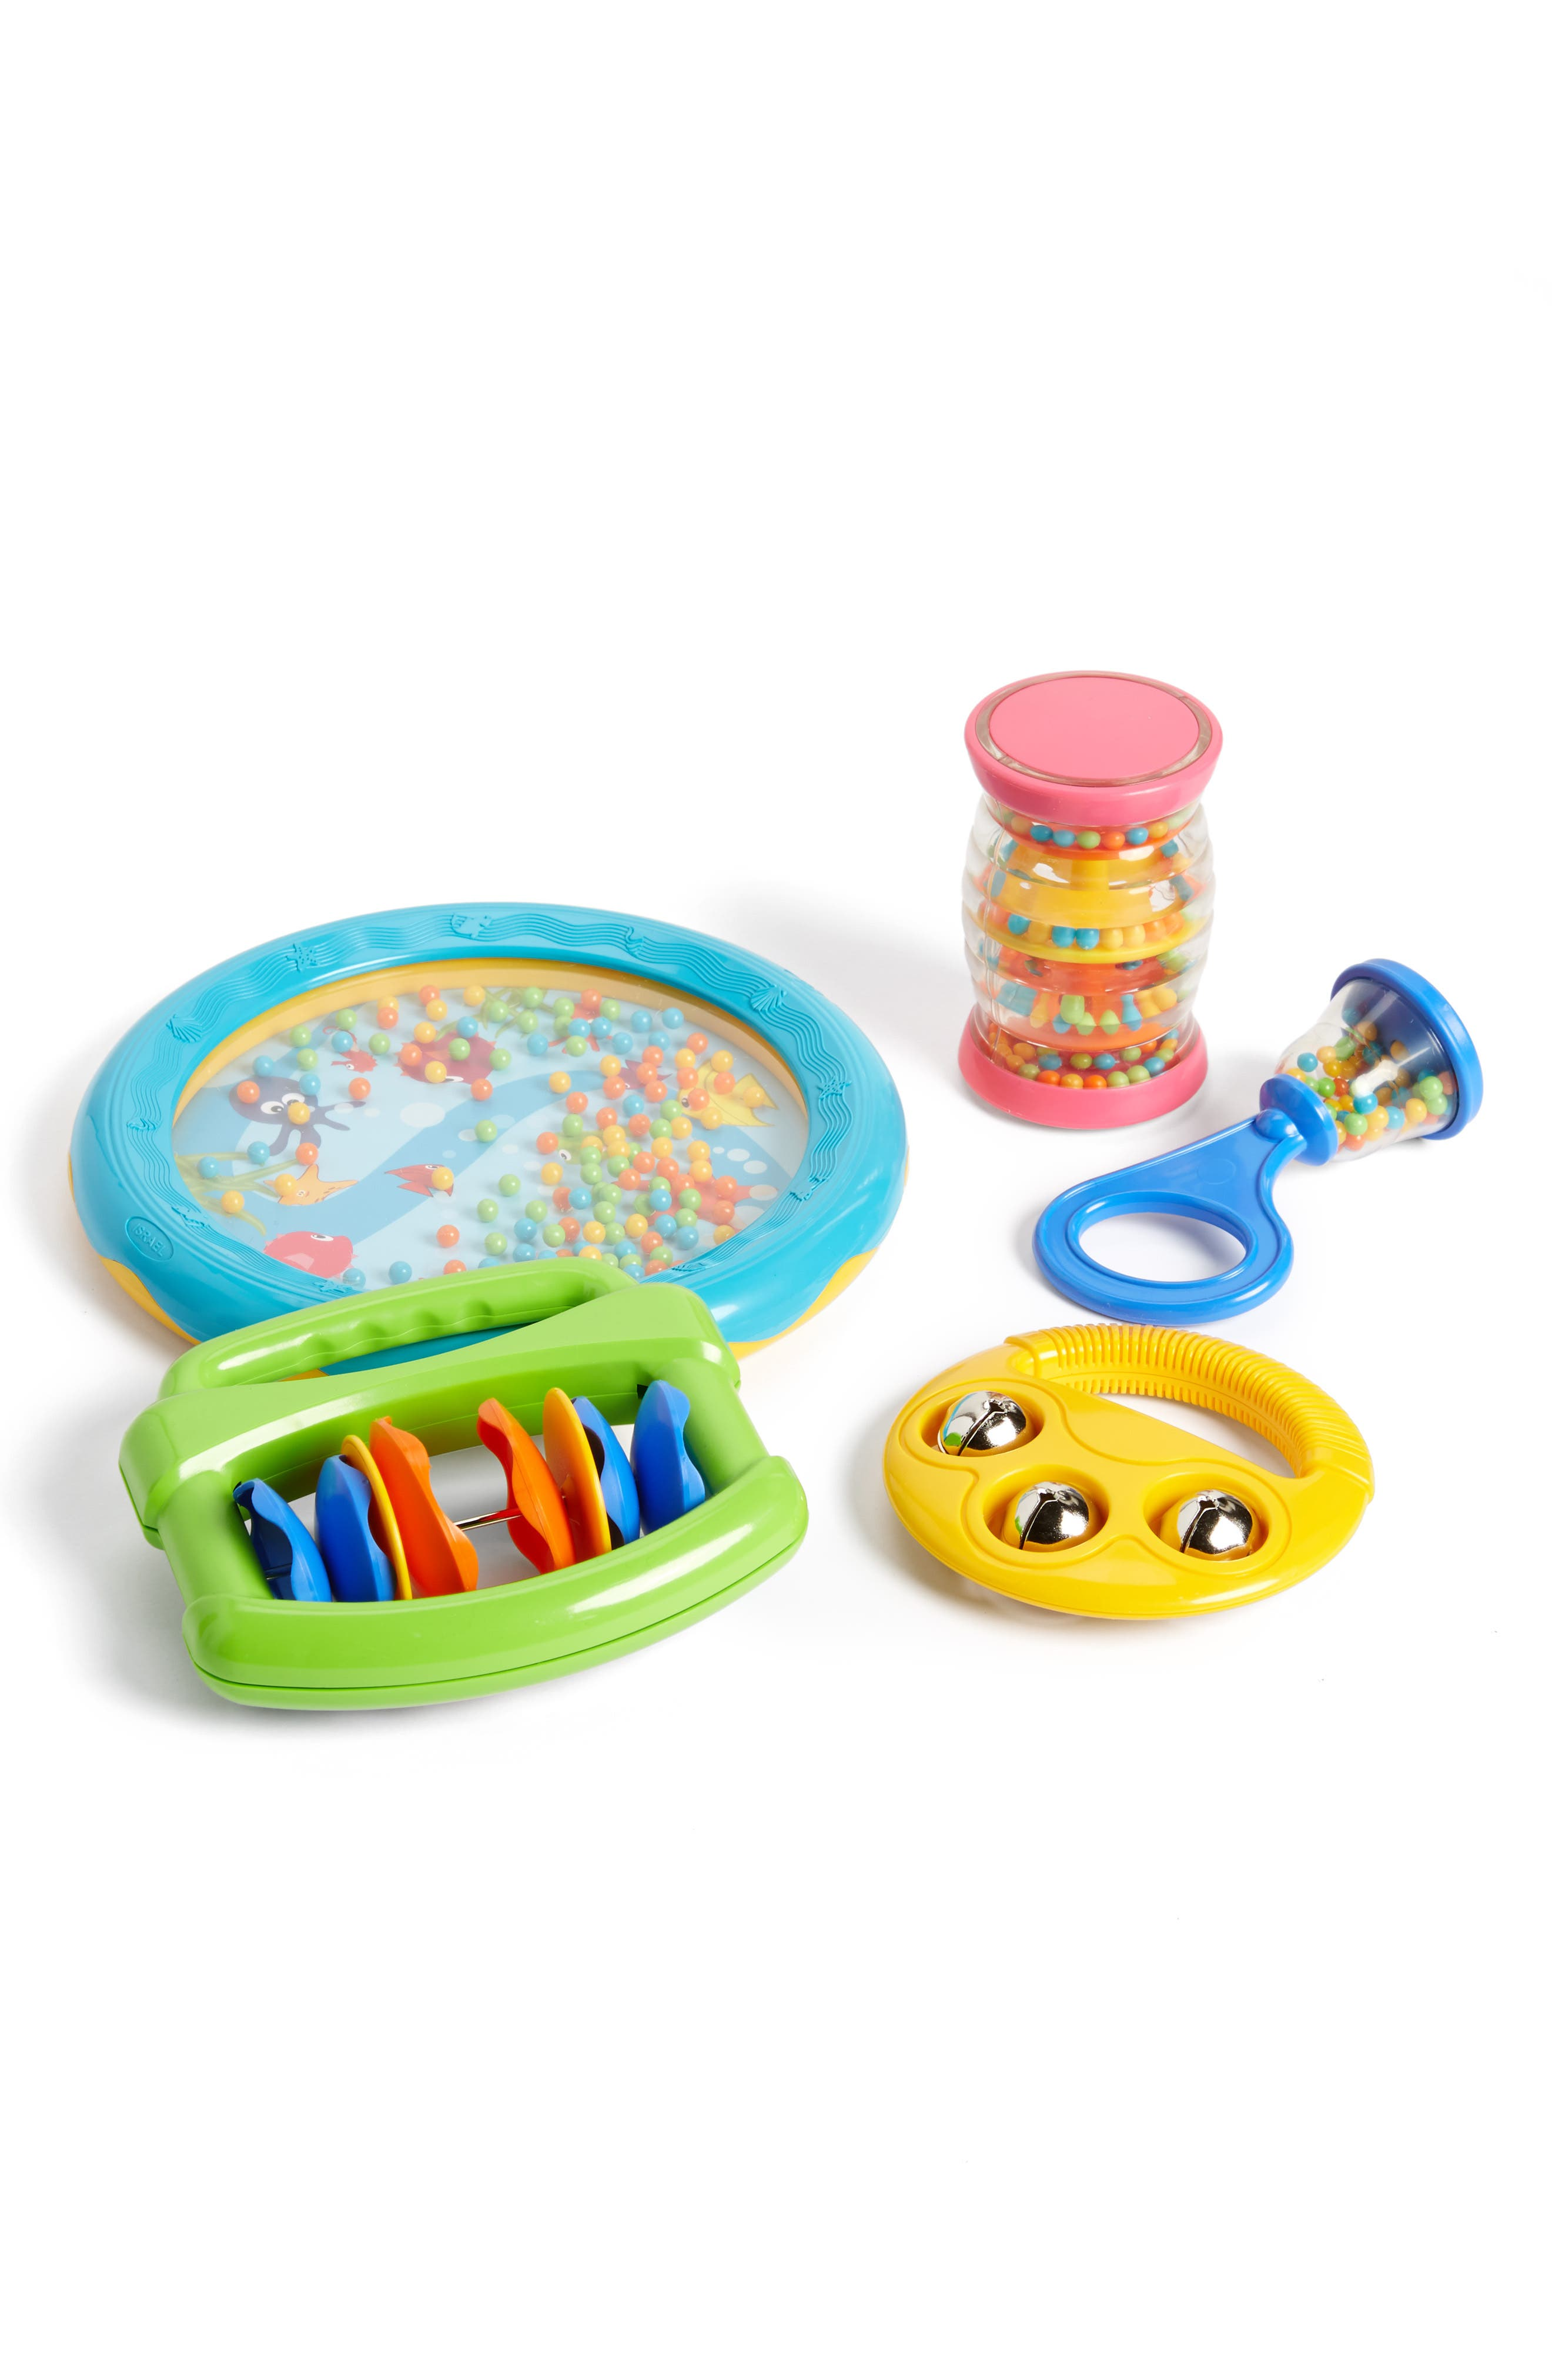 Baby's First Birthday 5-Piece Play Set,                         Main,                         color, 400